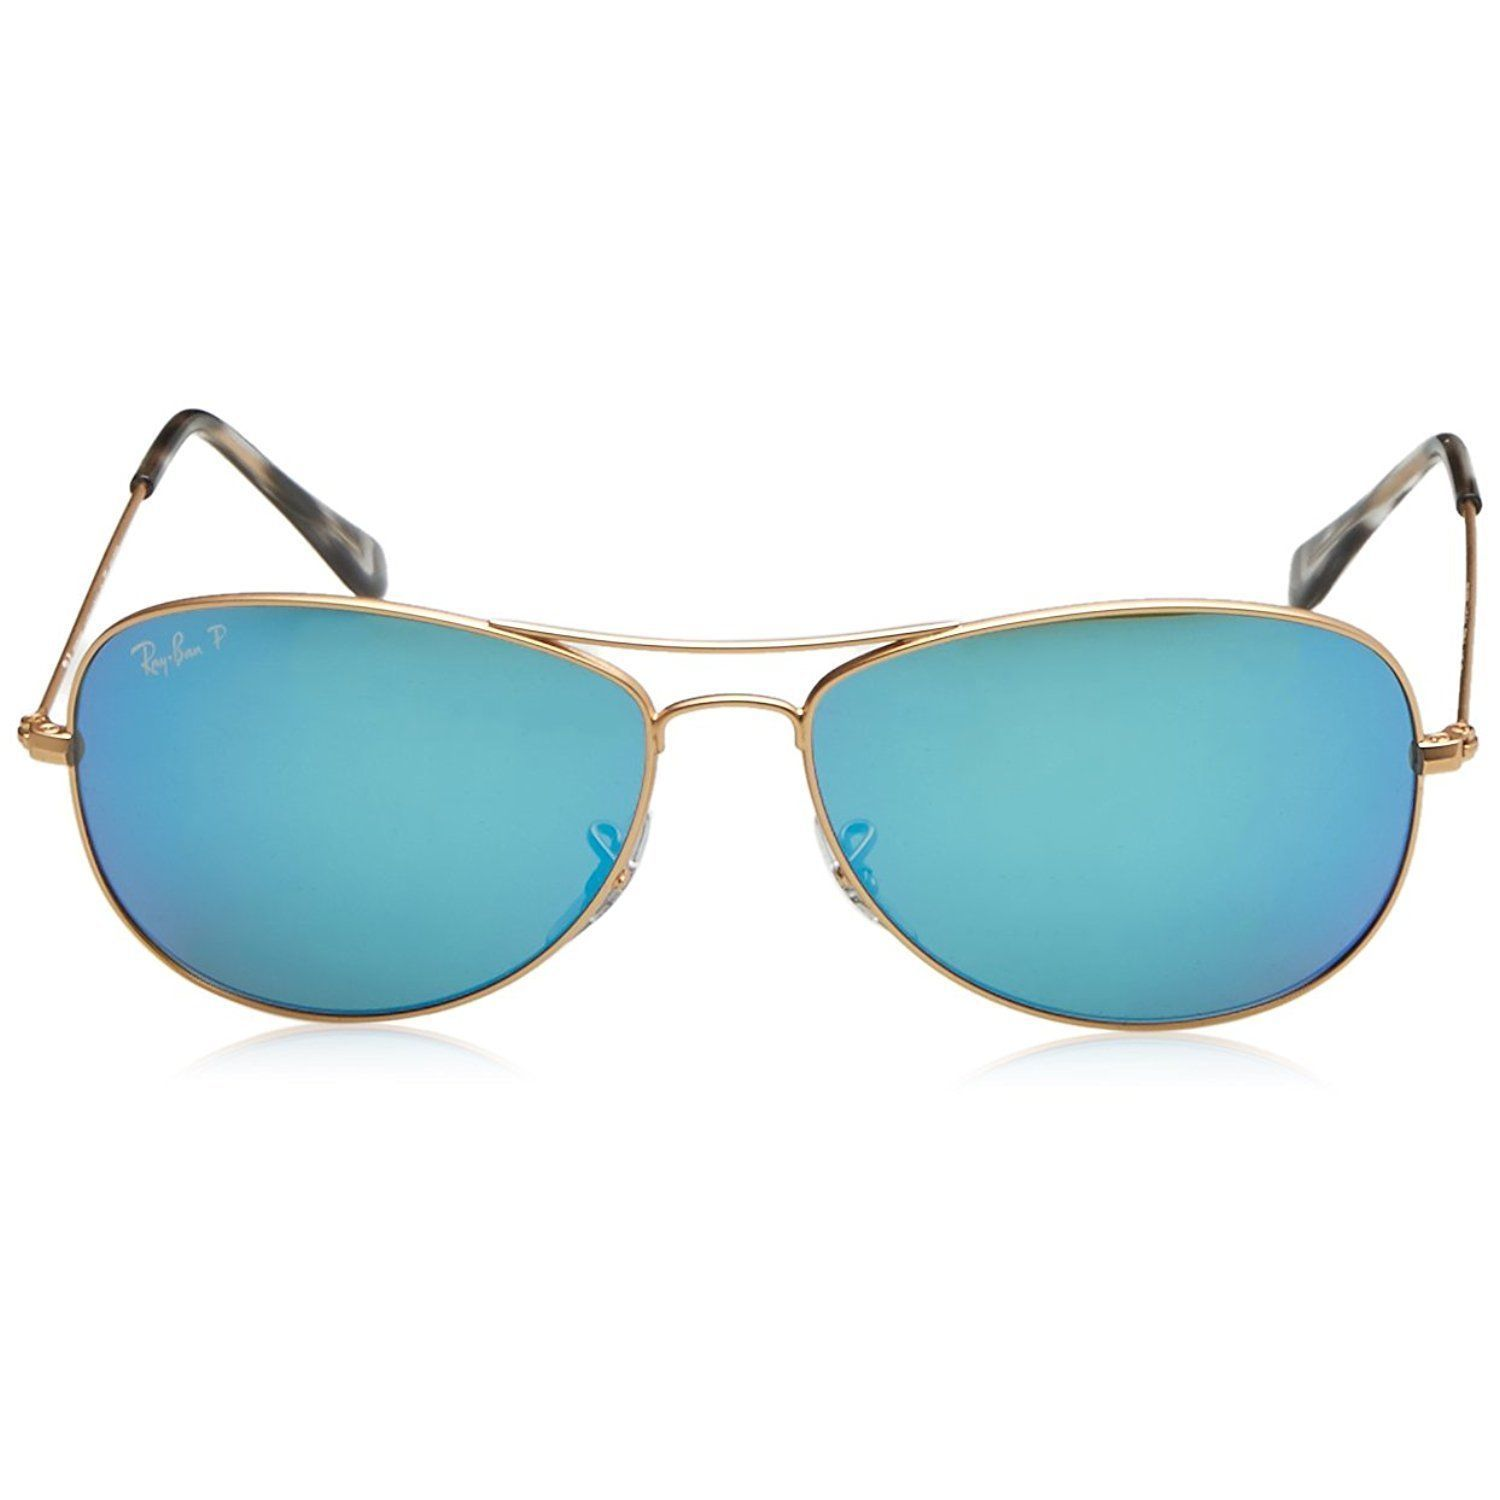 fd33670350 Shop Ray-Ban Chromance RB3562 112 A1 Men s Gold Frame Polarized Blue Mirror  59mm Lens Sunglasses - Free Shipping Today - Overstock - 15287709